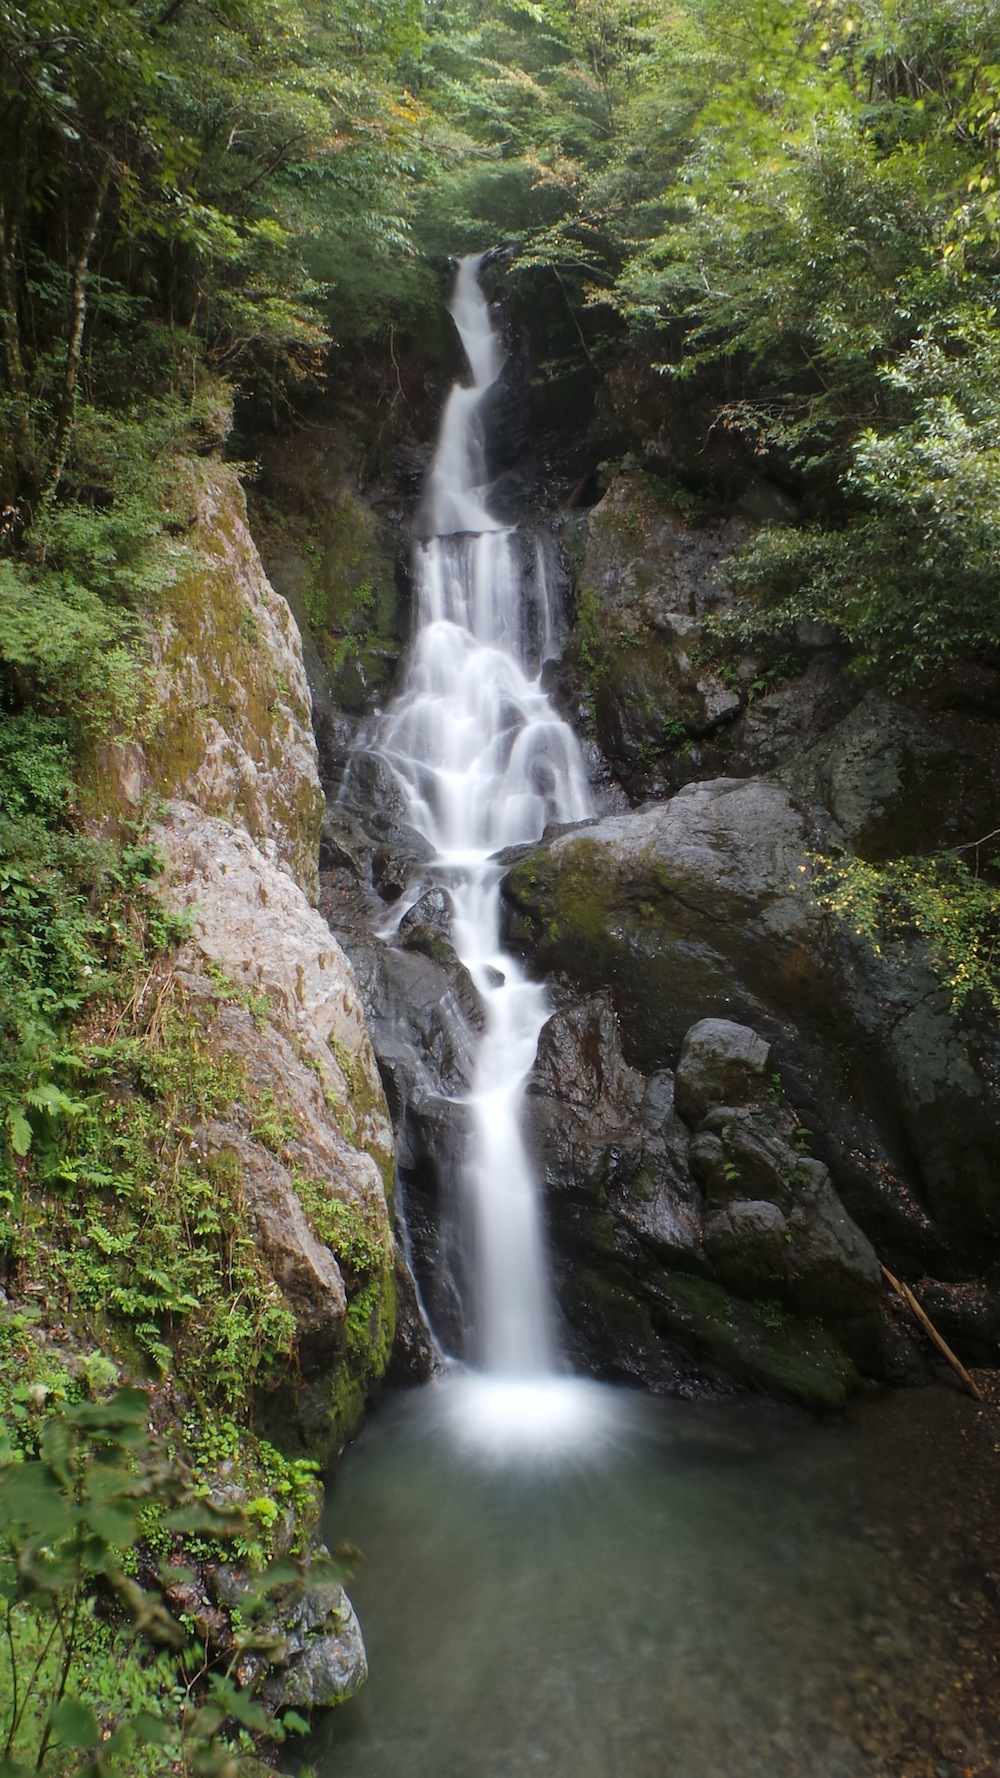 umenoki-todoro-ou-phantom-waterfall